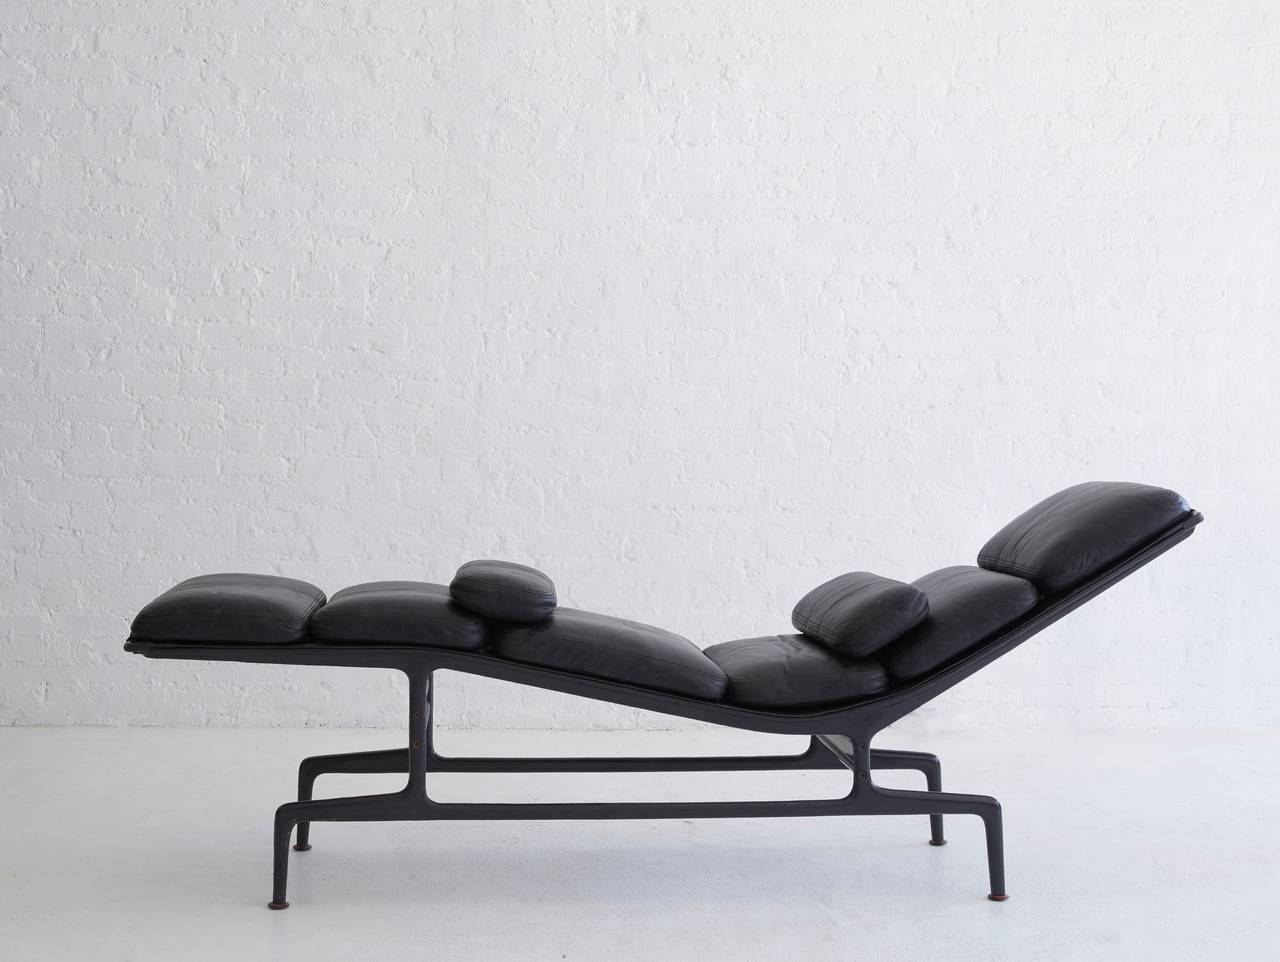 eames chaise longue for billy wilder at 1stdibs. Black Bedroom Furniture Sets. Home Design Ideas